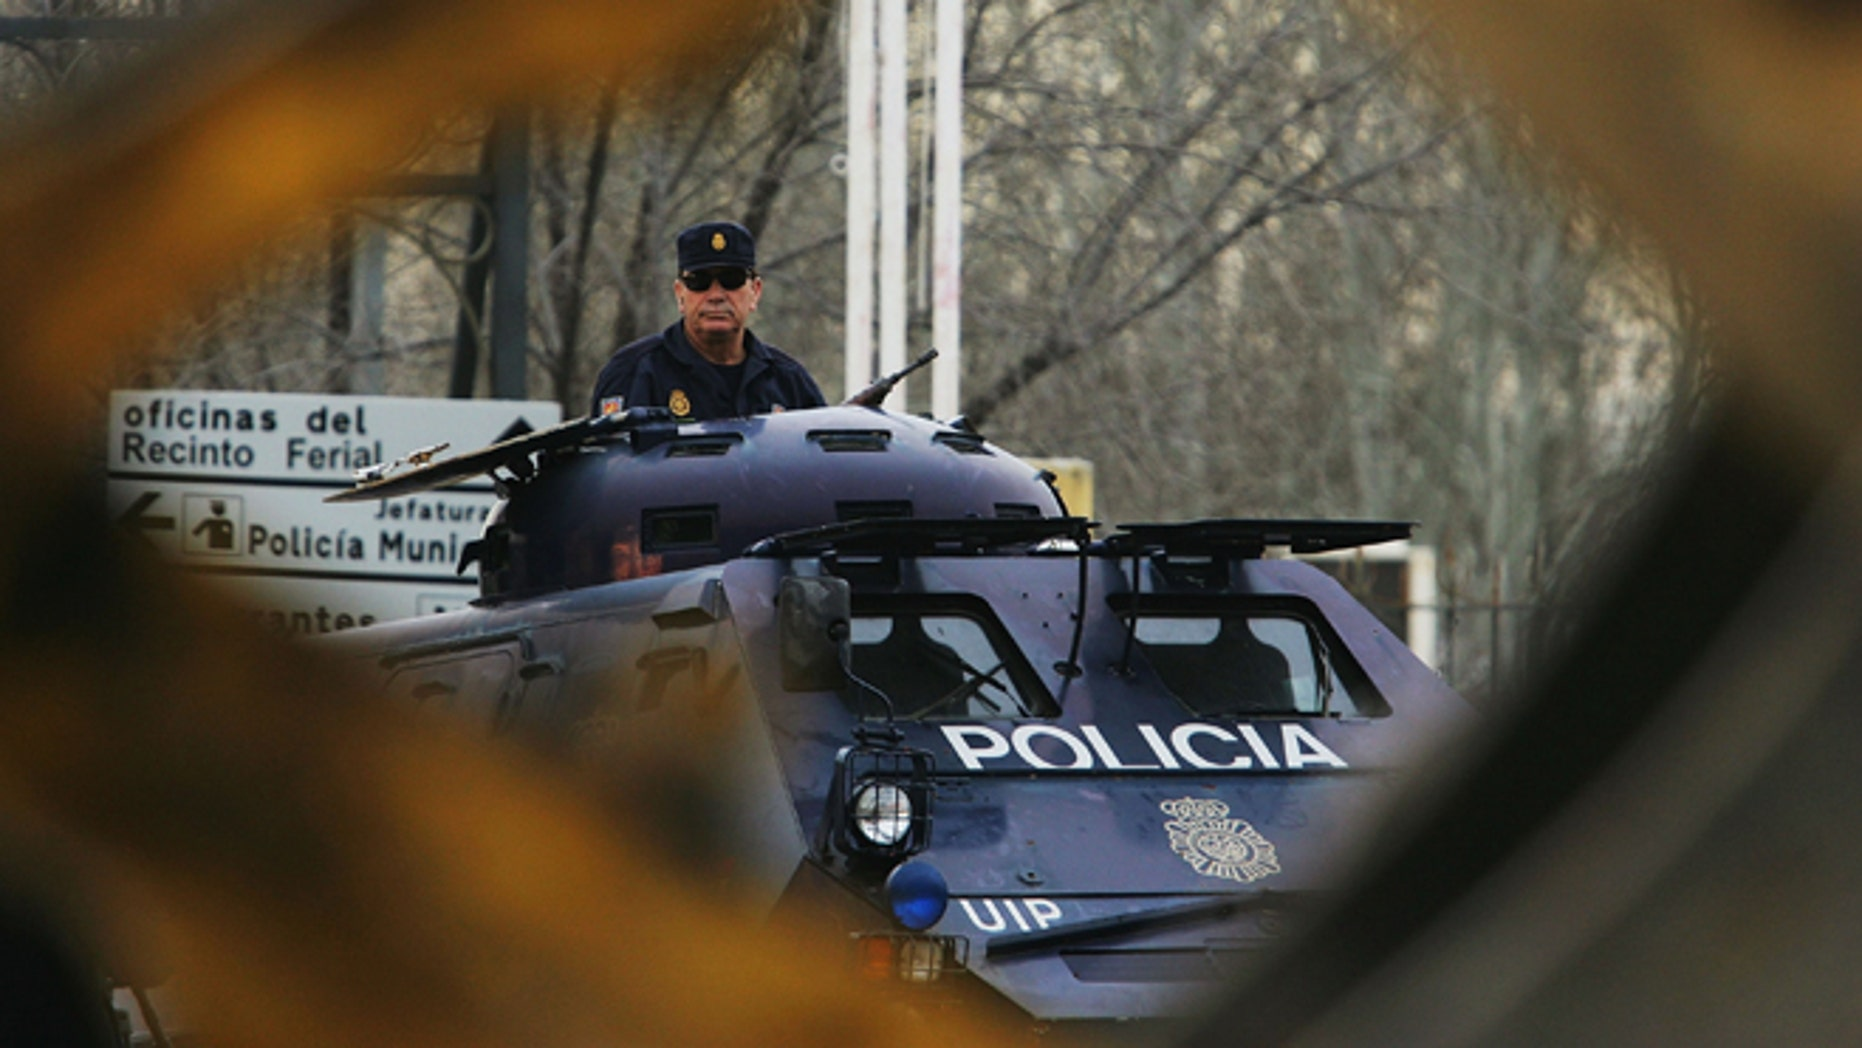 MADRID, SPAIN - FEBRUARY 15:  A digger passes an armoured police vehicle at the Madrid National Court in the Casa de Campo, on the first day of the Madrid train bombings trial, on February 15, 2007 in Madrid, Spain. The March 2004 attack on commuter trains killed 119 and wounded 1,700 people. (Photo by Denis Doyle/Getty Images)